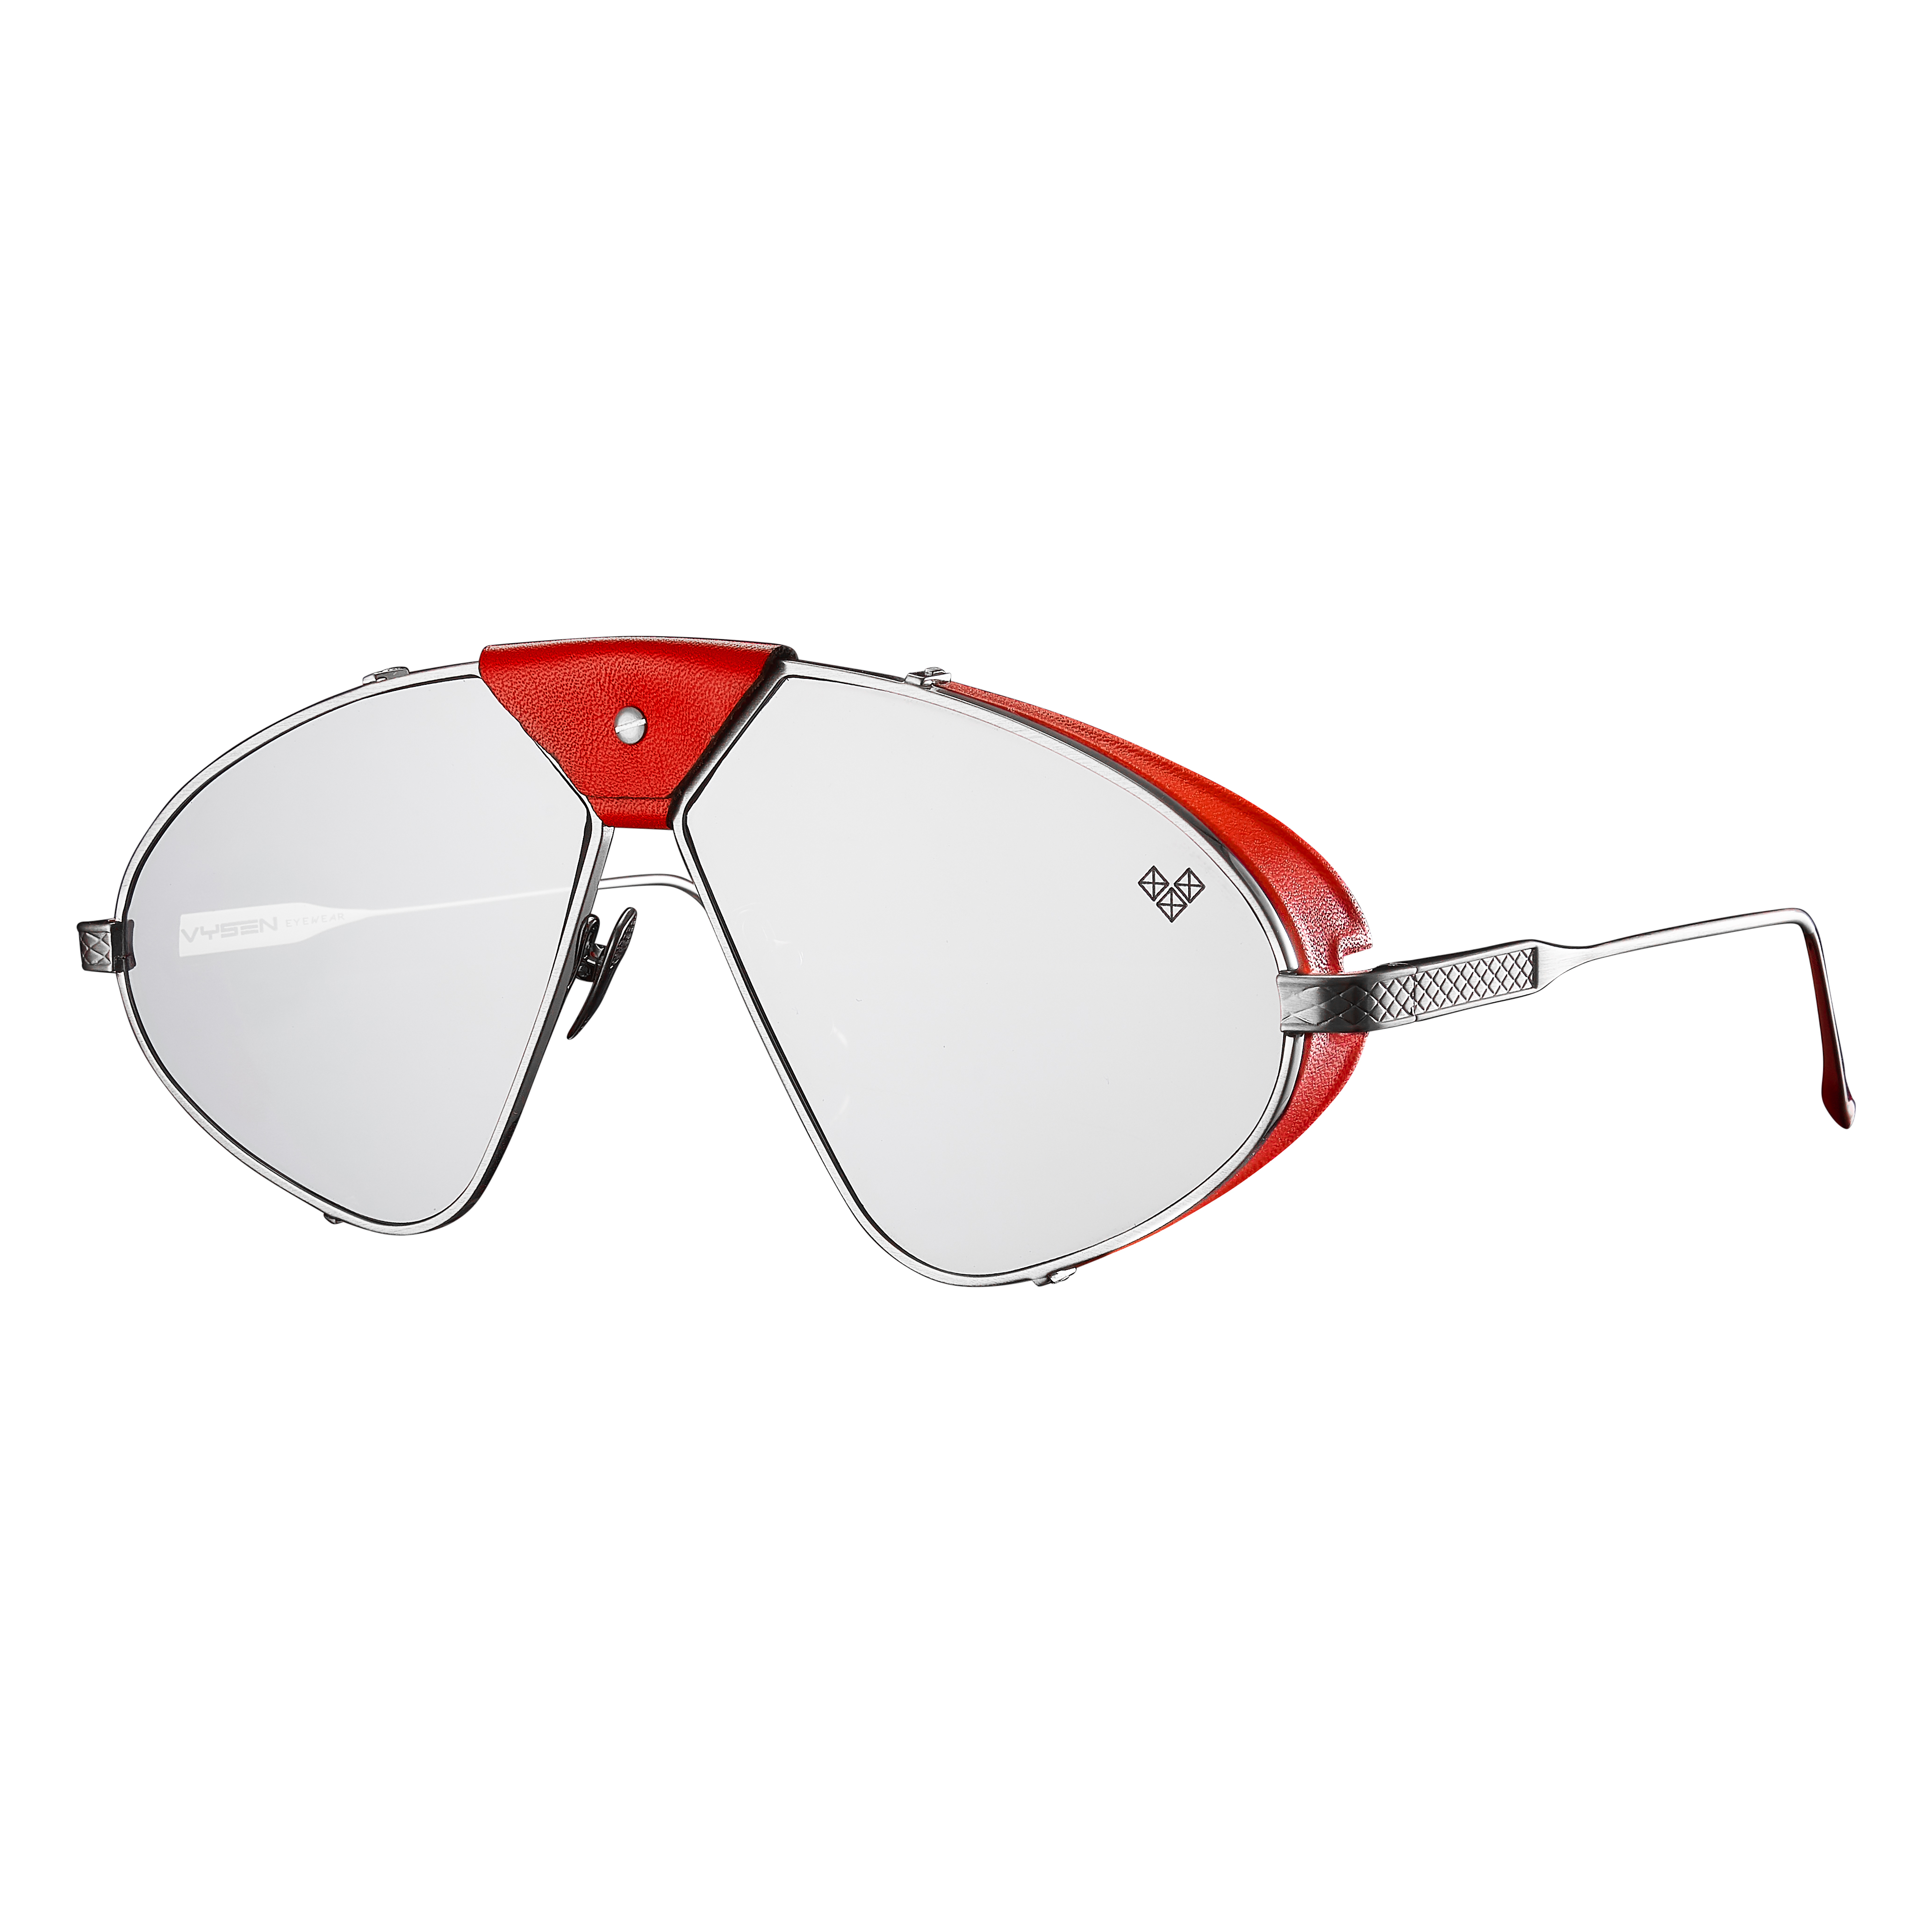 Luis Fonsi - F - 3 + Silver Frame + Silver Mirror Lenses + Red Leather